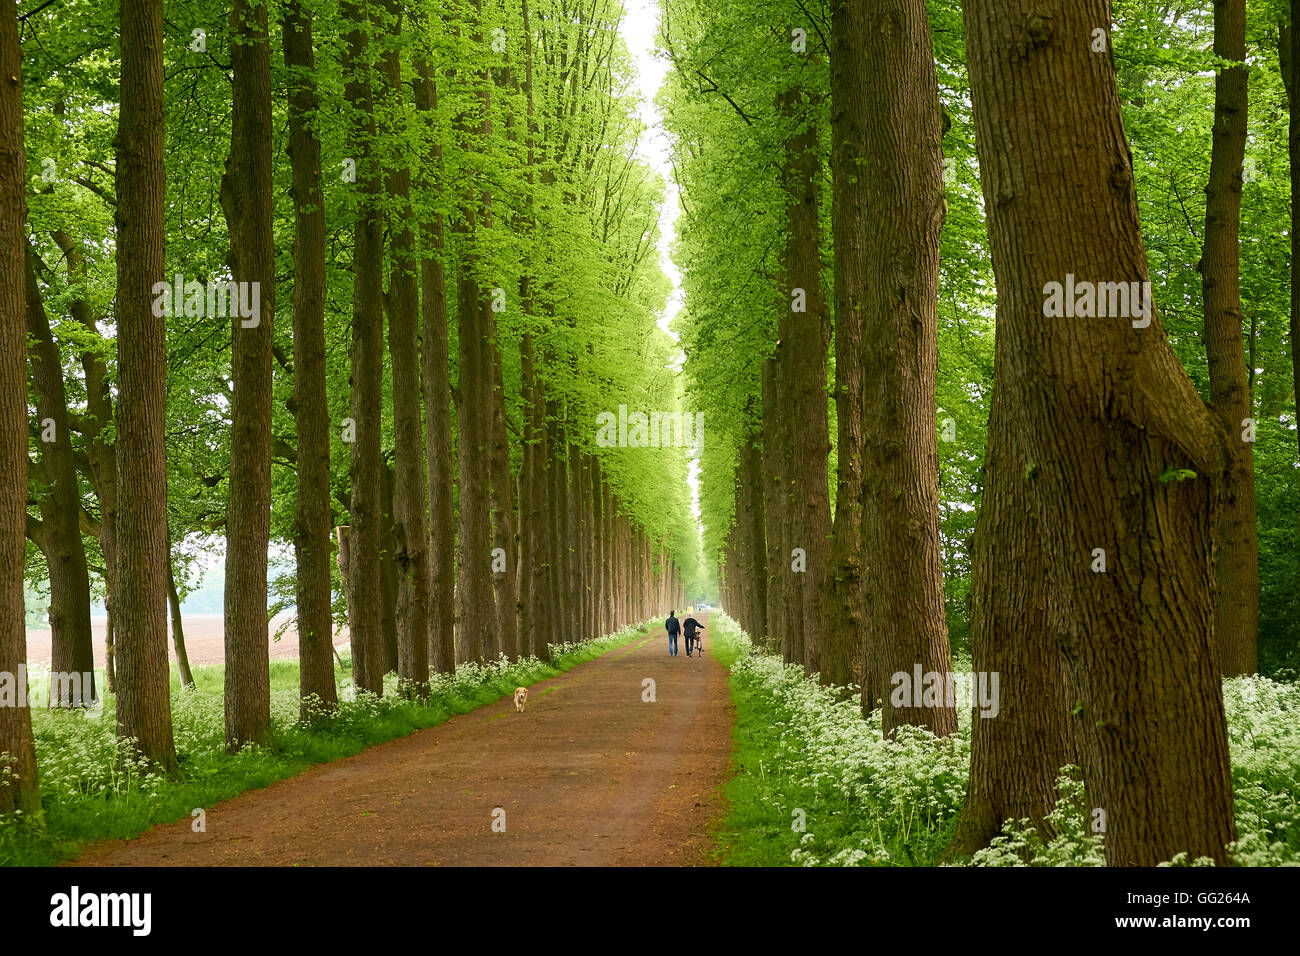 Allee of Evenburg in Leer, East Frisia, Germany - Stock Image